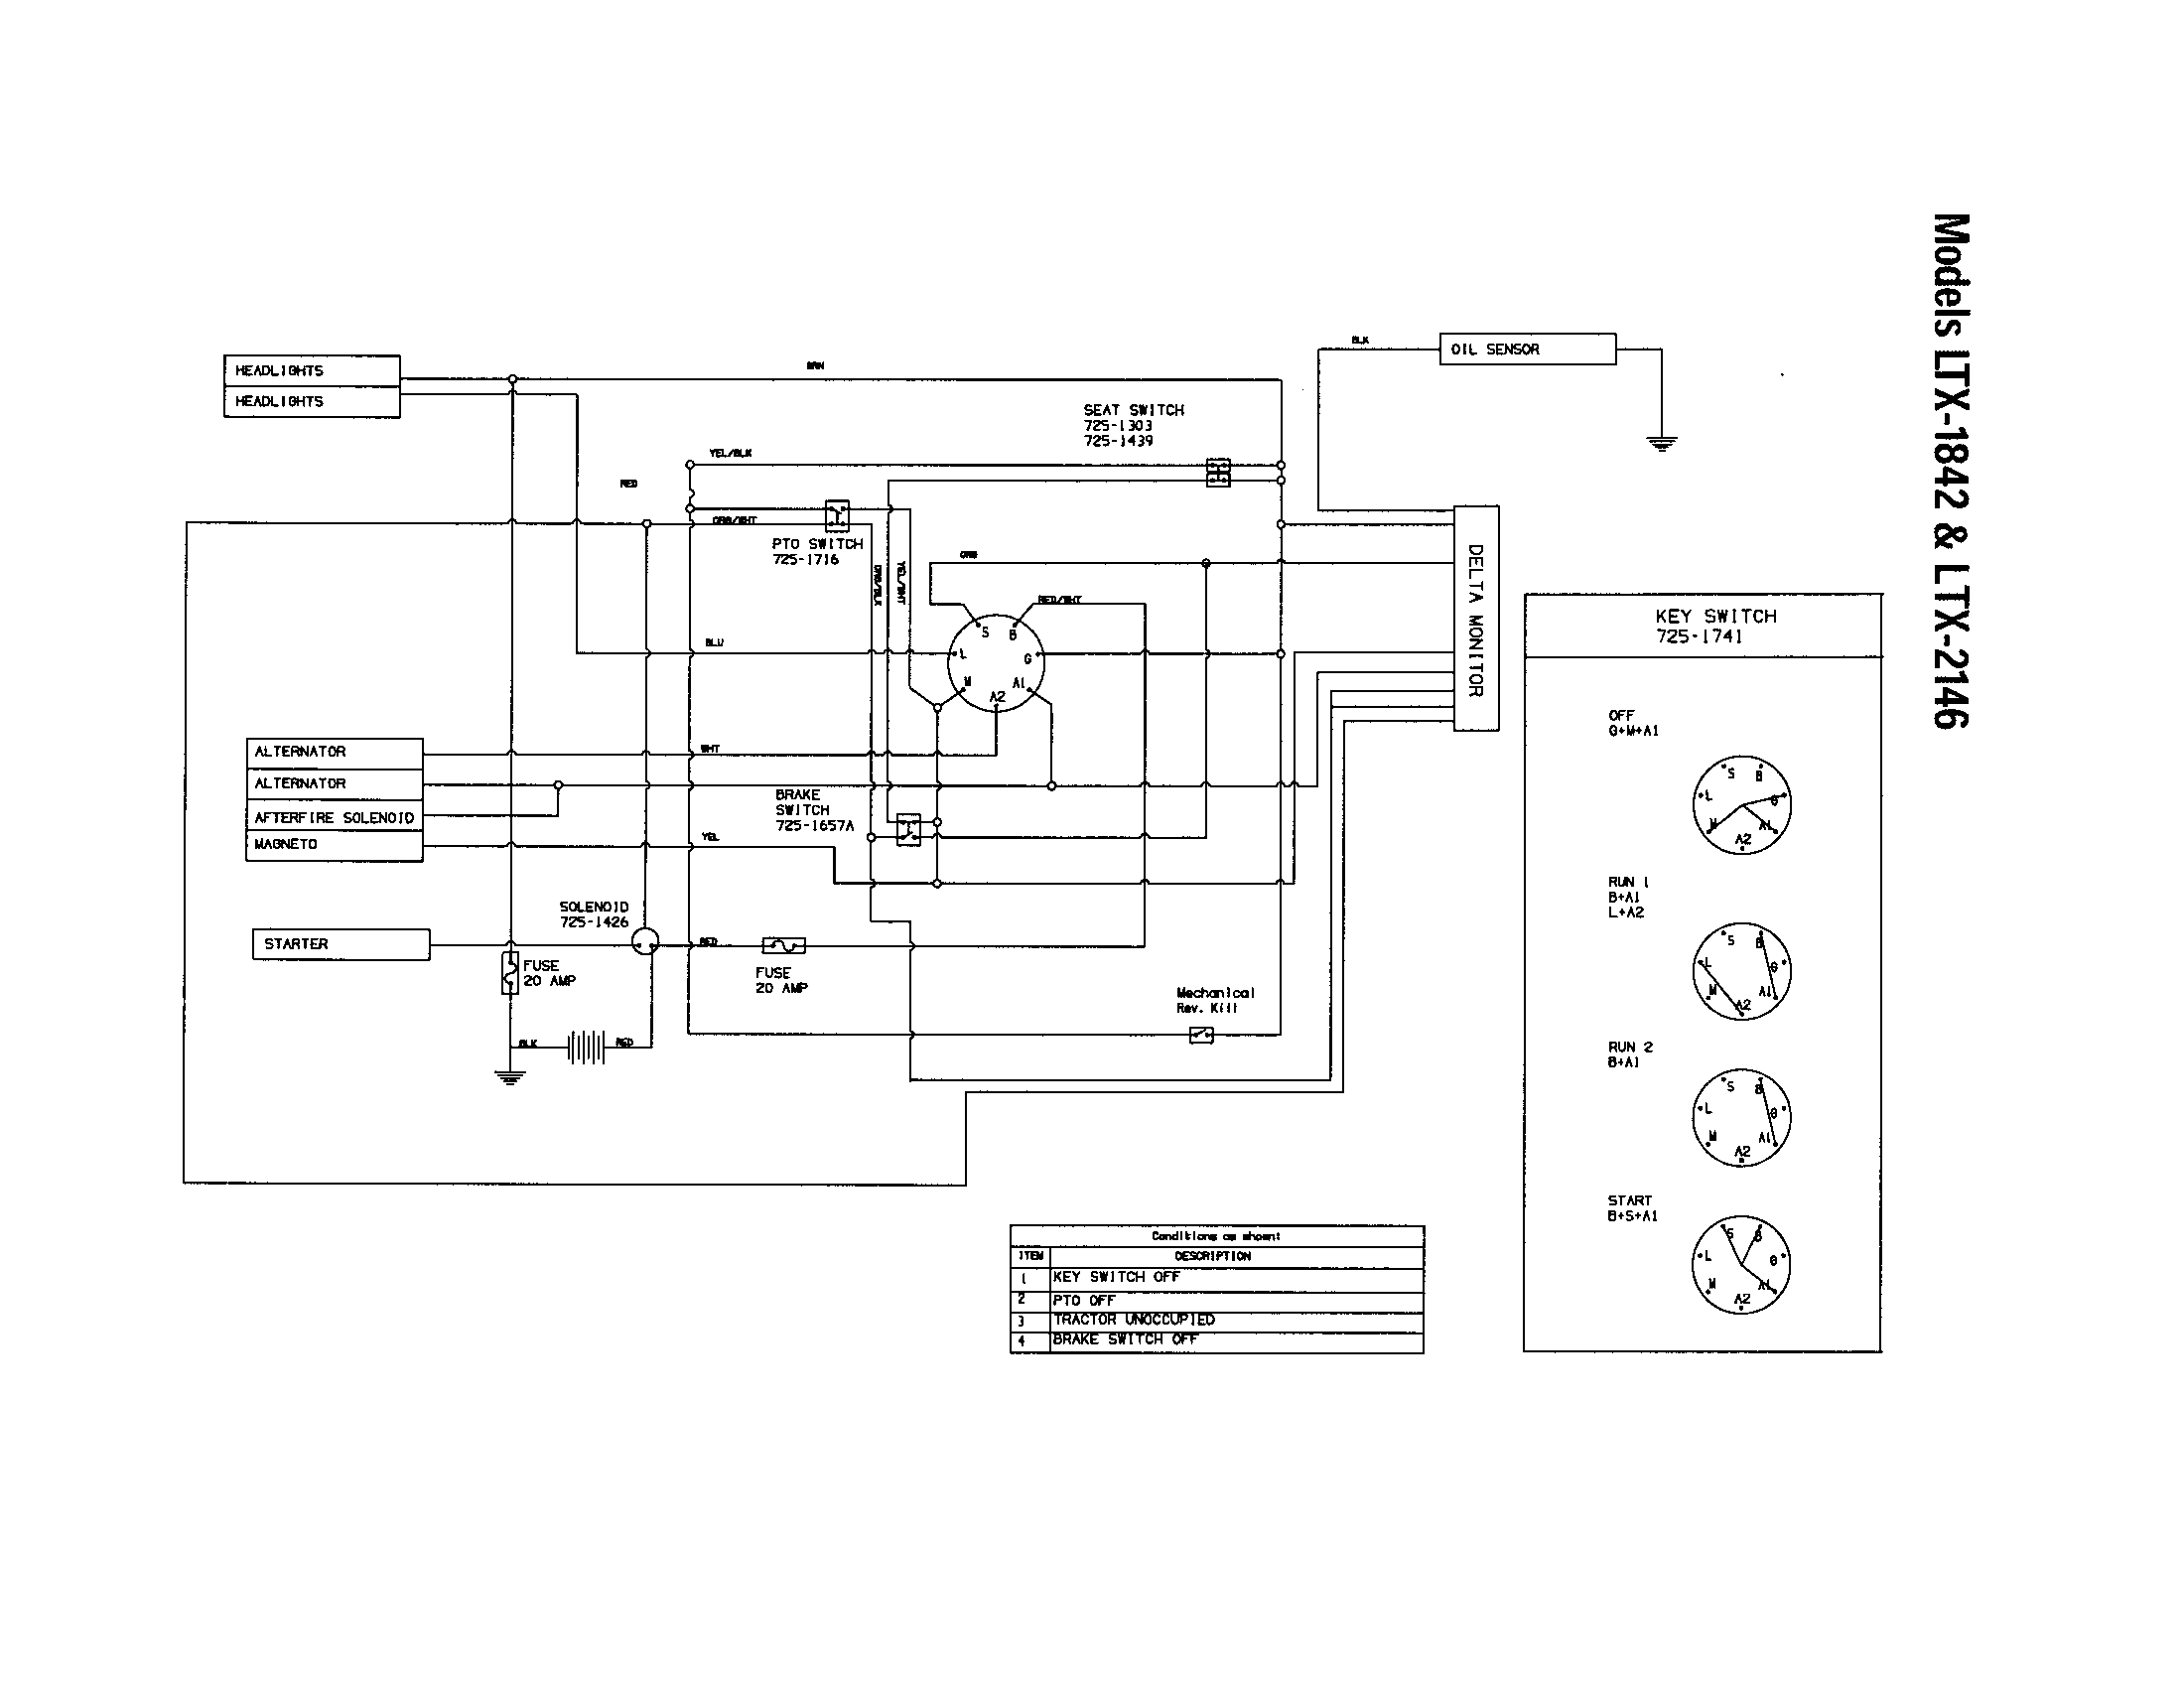 5f6fdf170ac50150de0653e8e97fb173 wiring diagram diagram & parts list for model 13ap609g063 troybilt wiring diagram for sears riding mower at suagrazia.org